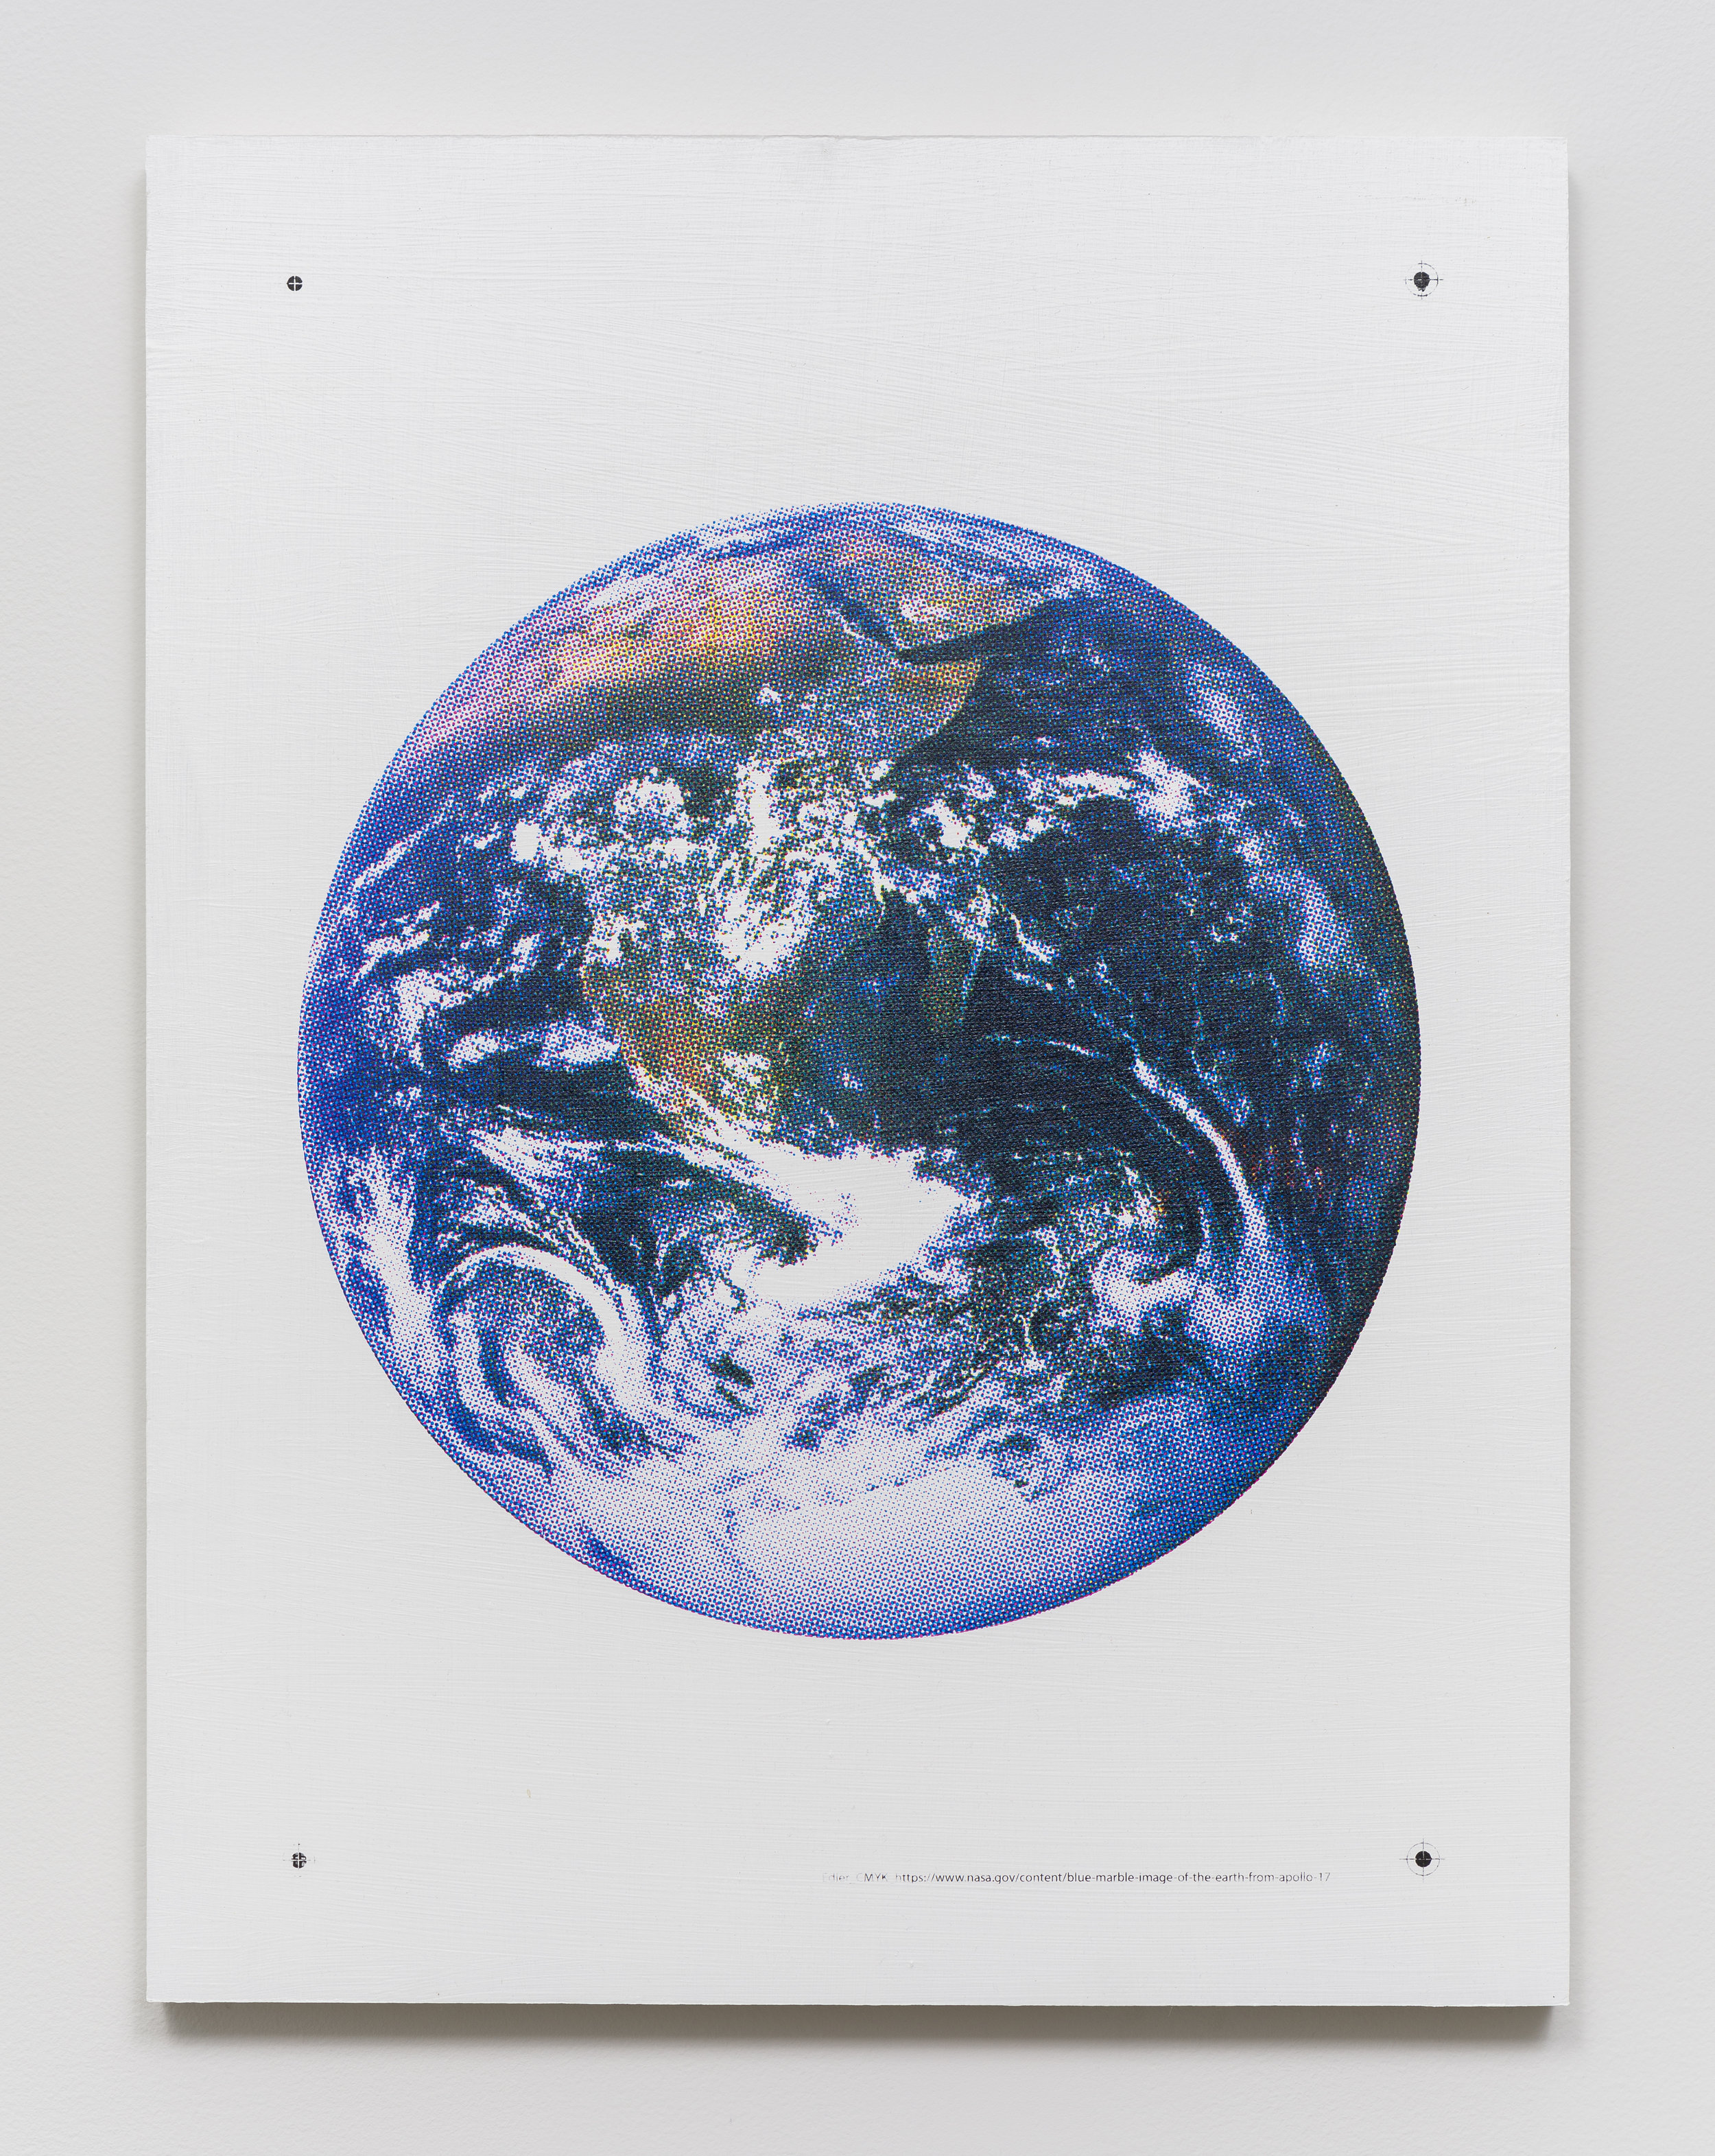 Don Edler  CMYK Blue Marble   2019 Gesso and silkscreen ink on panel 24 in x 18 in  Photo by Ruben Diaz